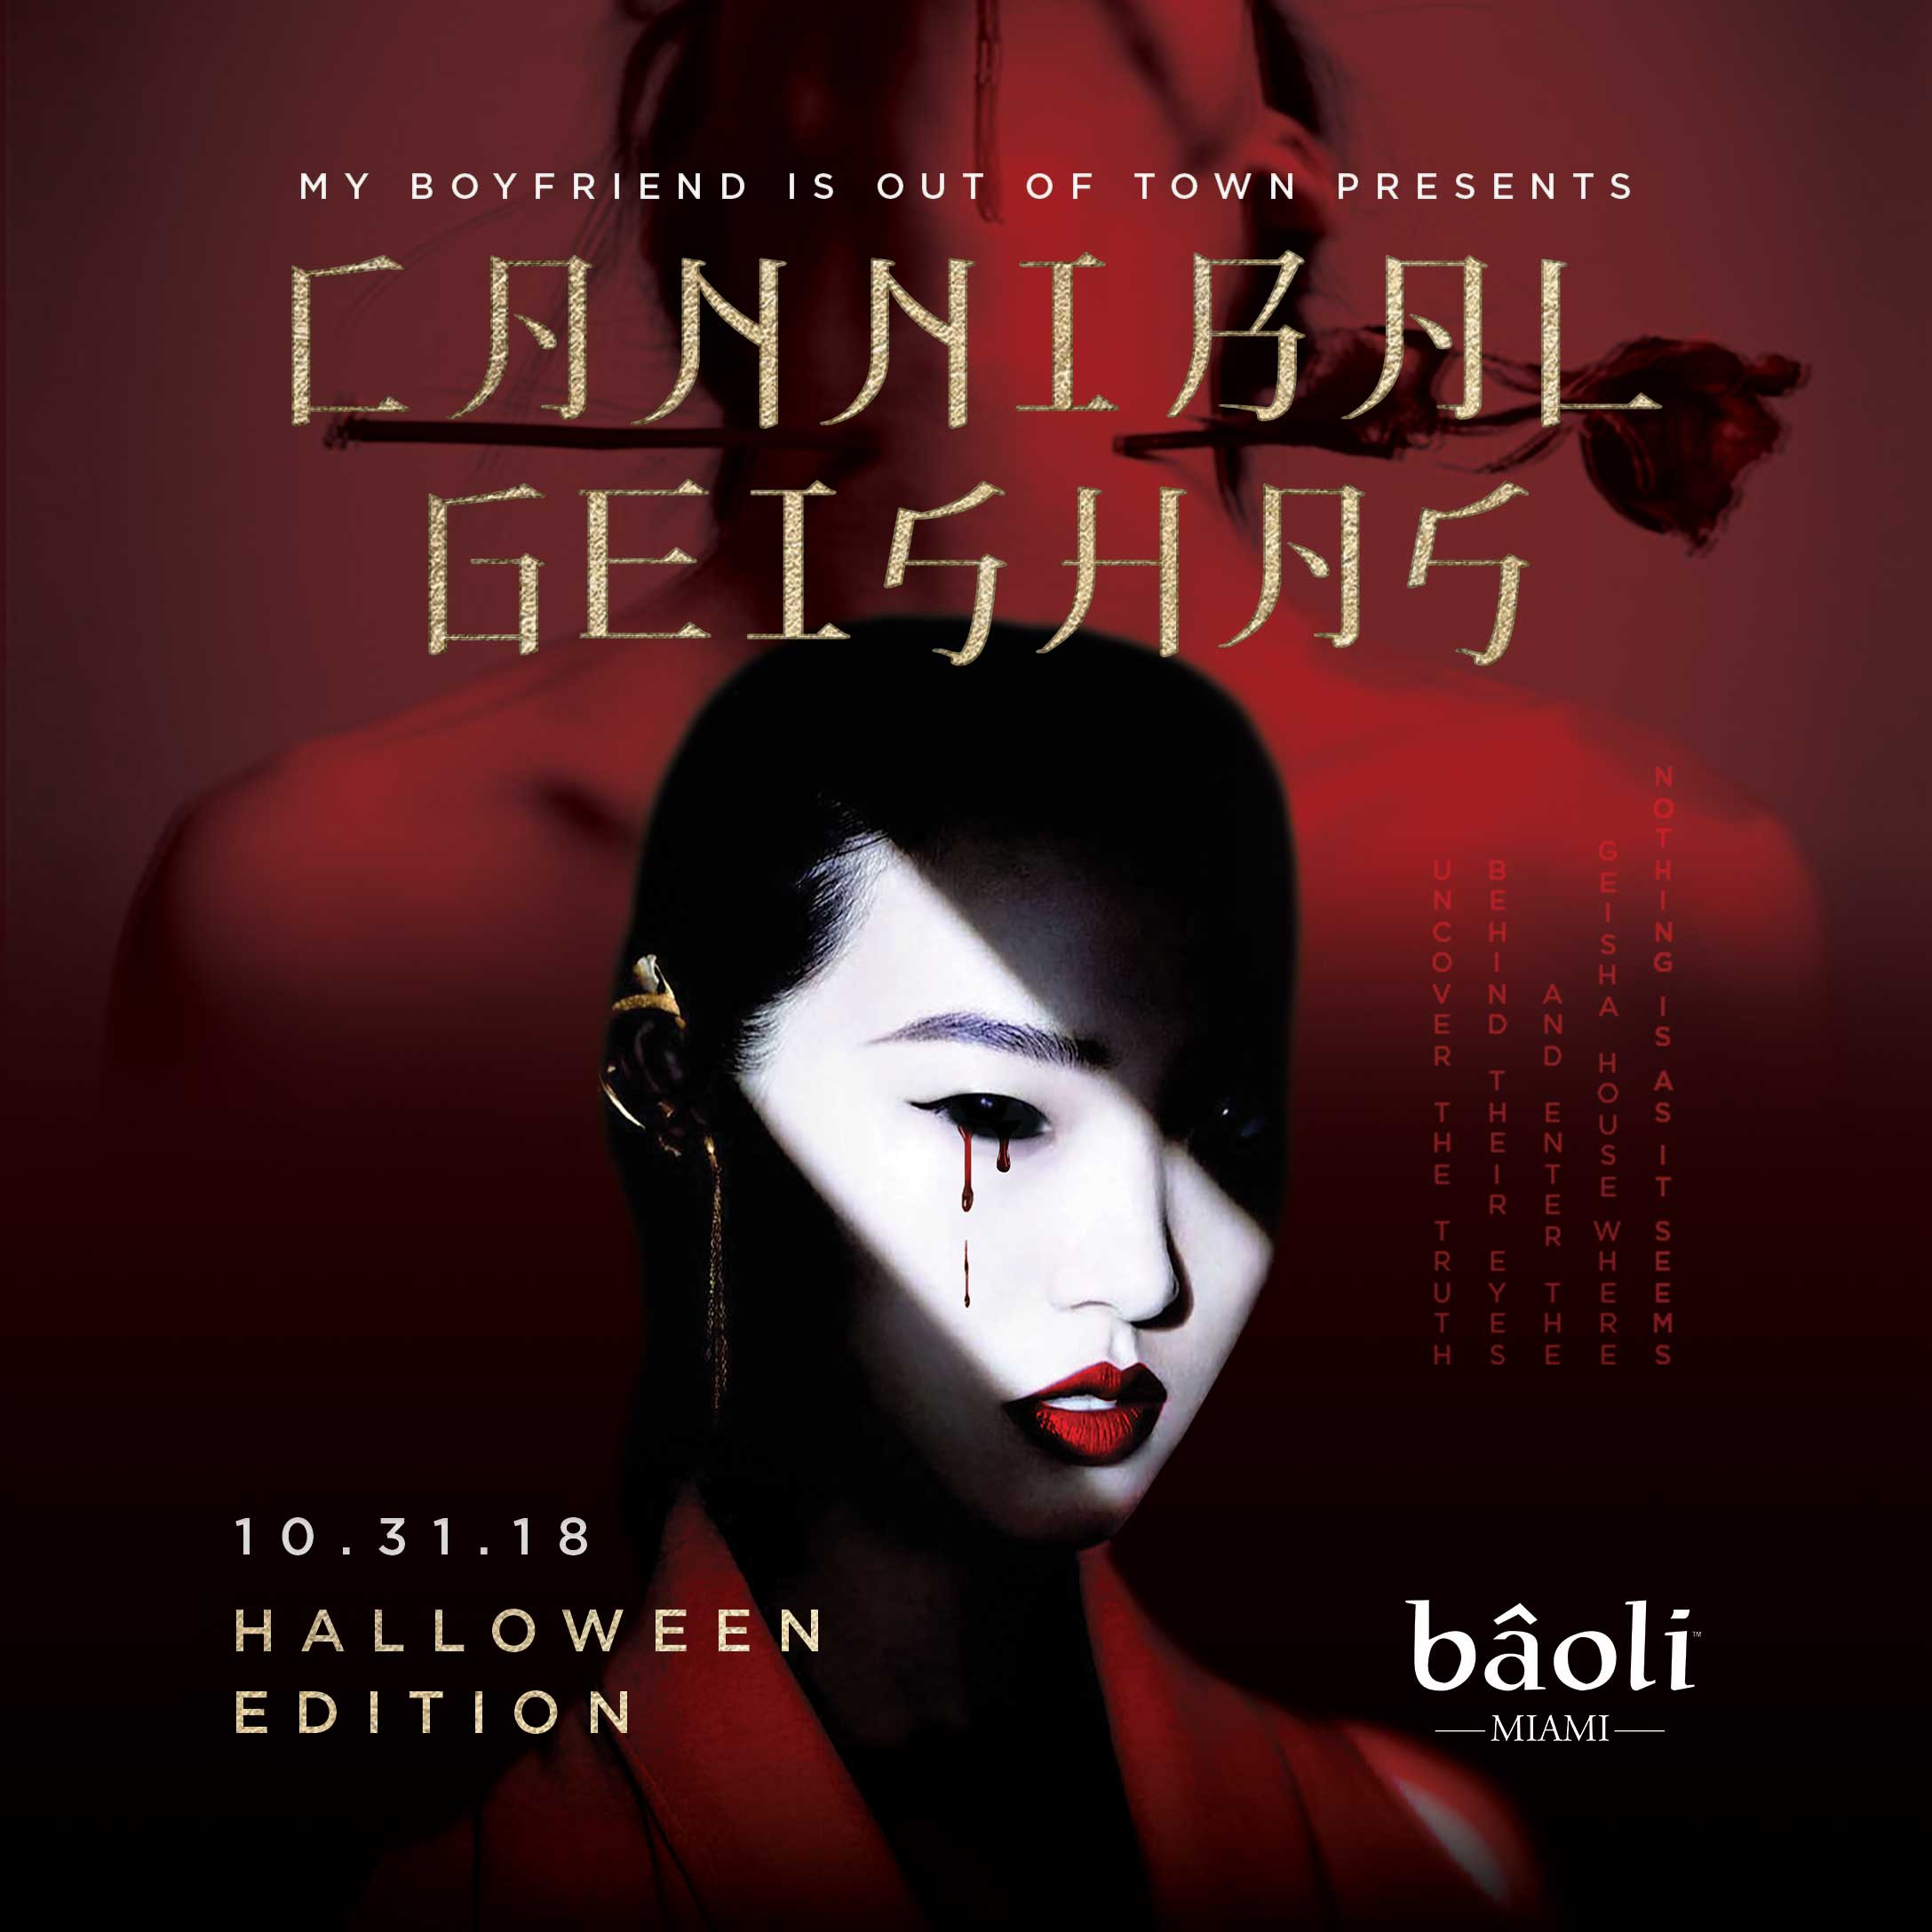 Cannibal-Geishas-Invite